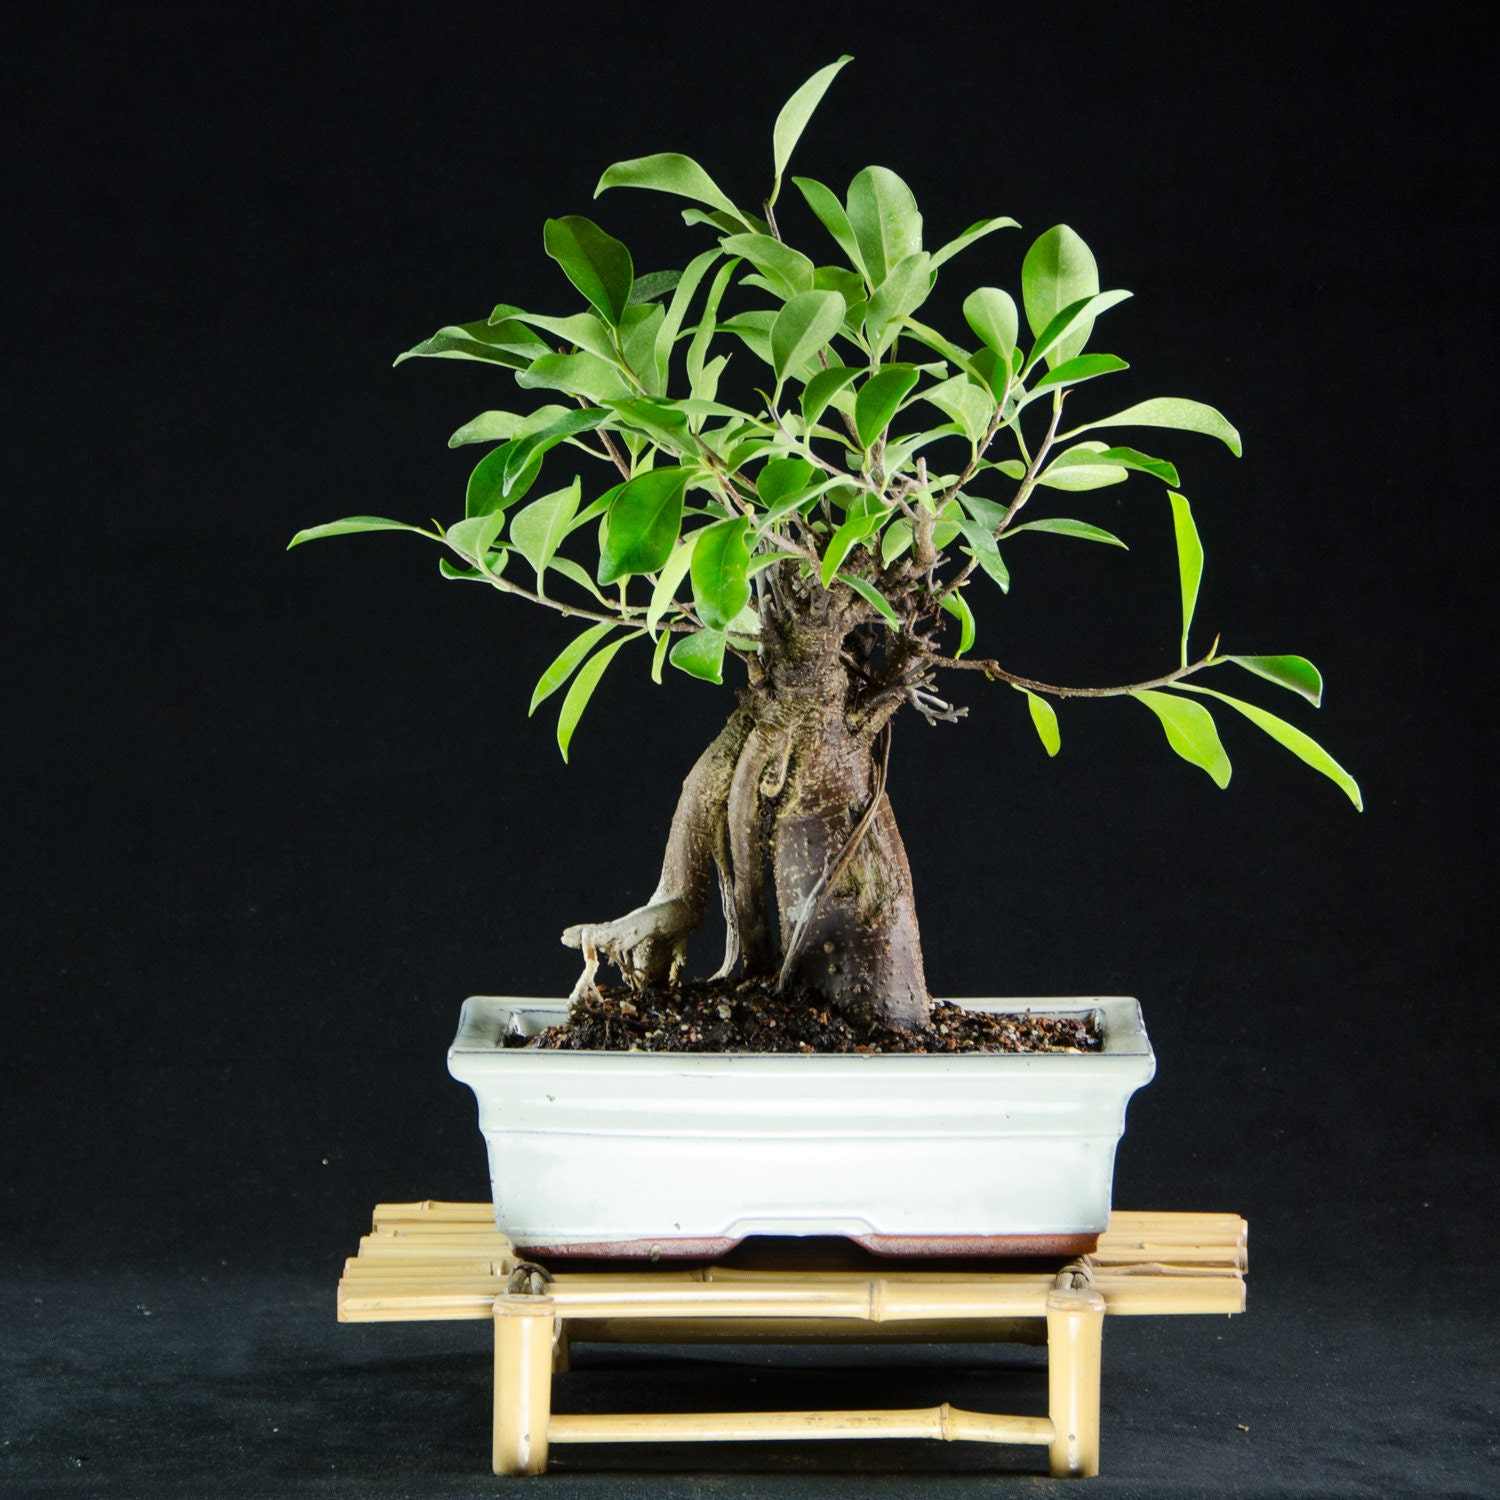 ginseng ficus kifu bonsai tree ficus microcarpa 8518 1. Black Bedroom Furniture Sets. Home Design Ideas